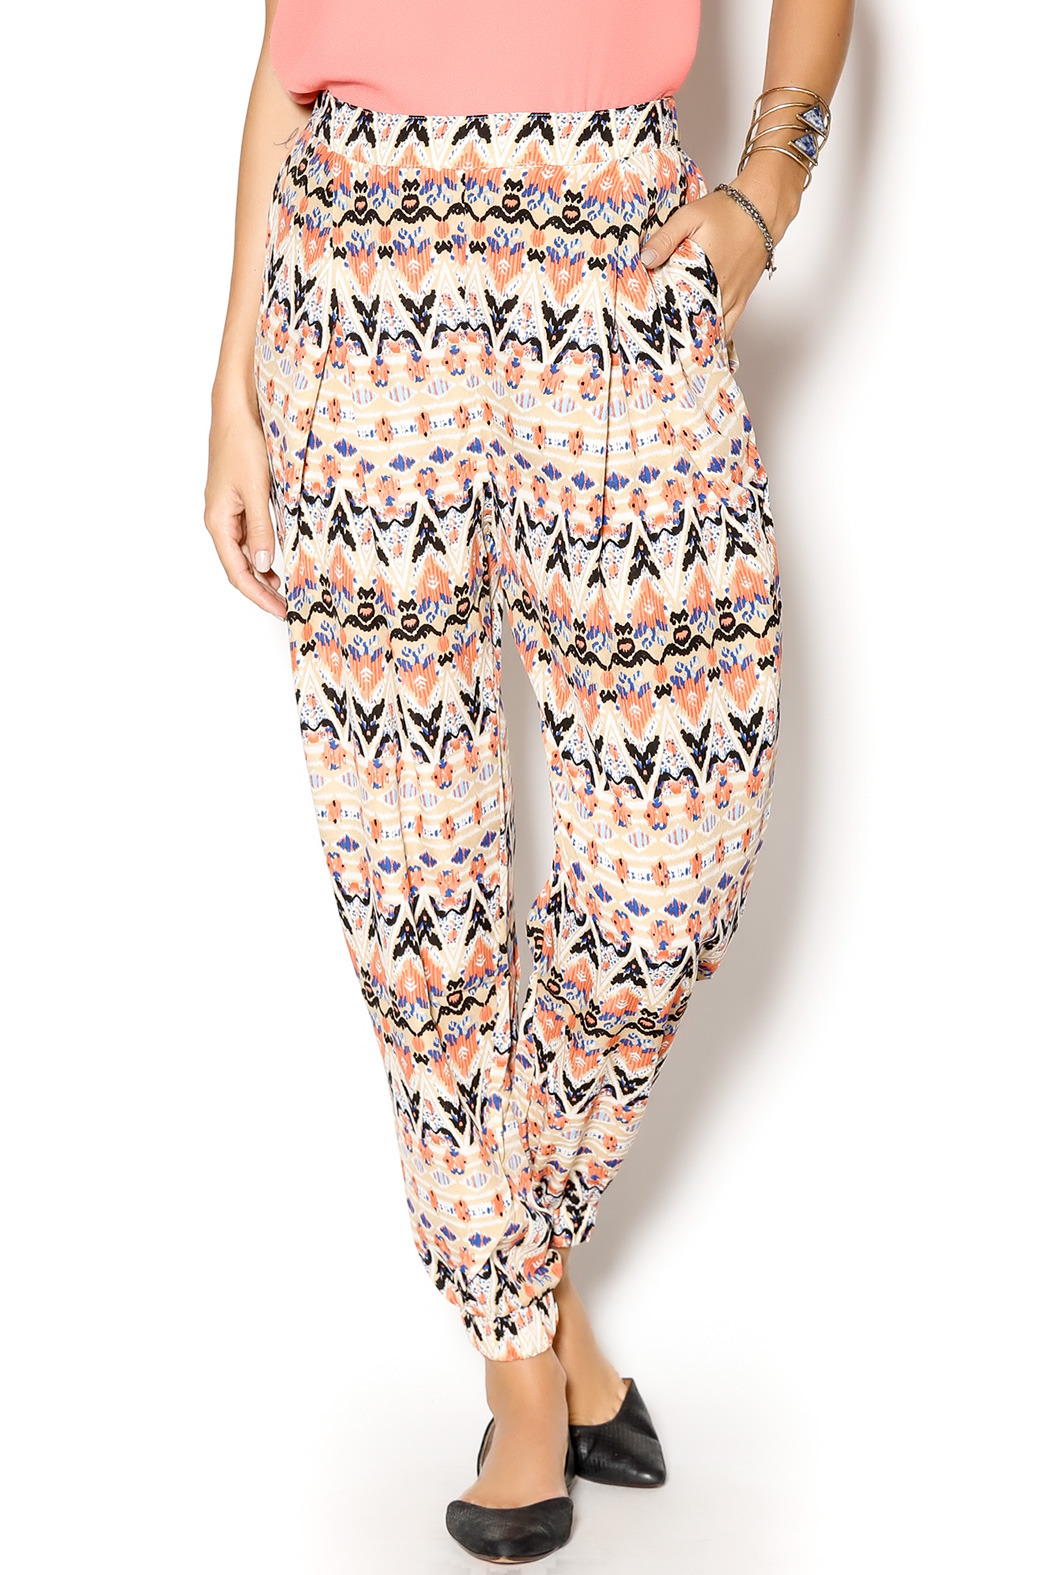 Beautiful imported harem pants from India with colorful cream and multi paisley pattern base and contrasting border at sides and ankles. These full pantaloons are perfect for Tribal Style, Tribaret, or Cabaret belly dance costuming.